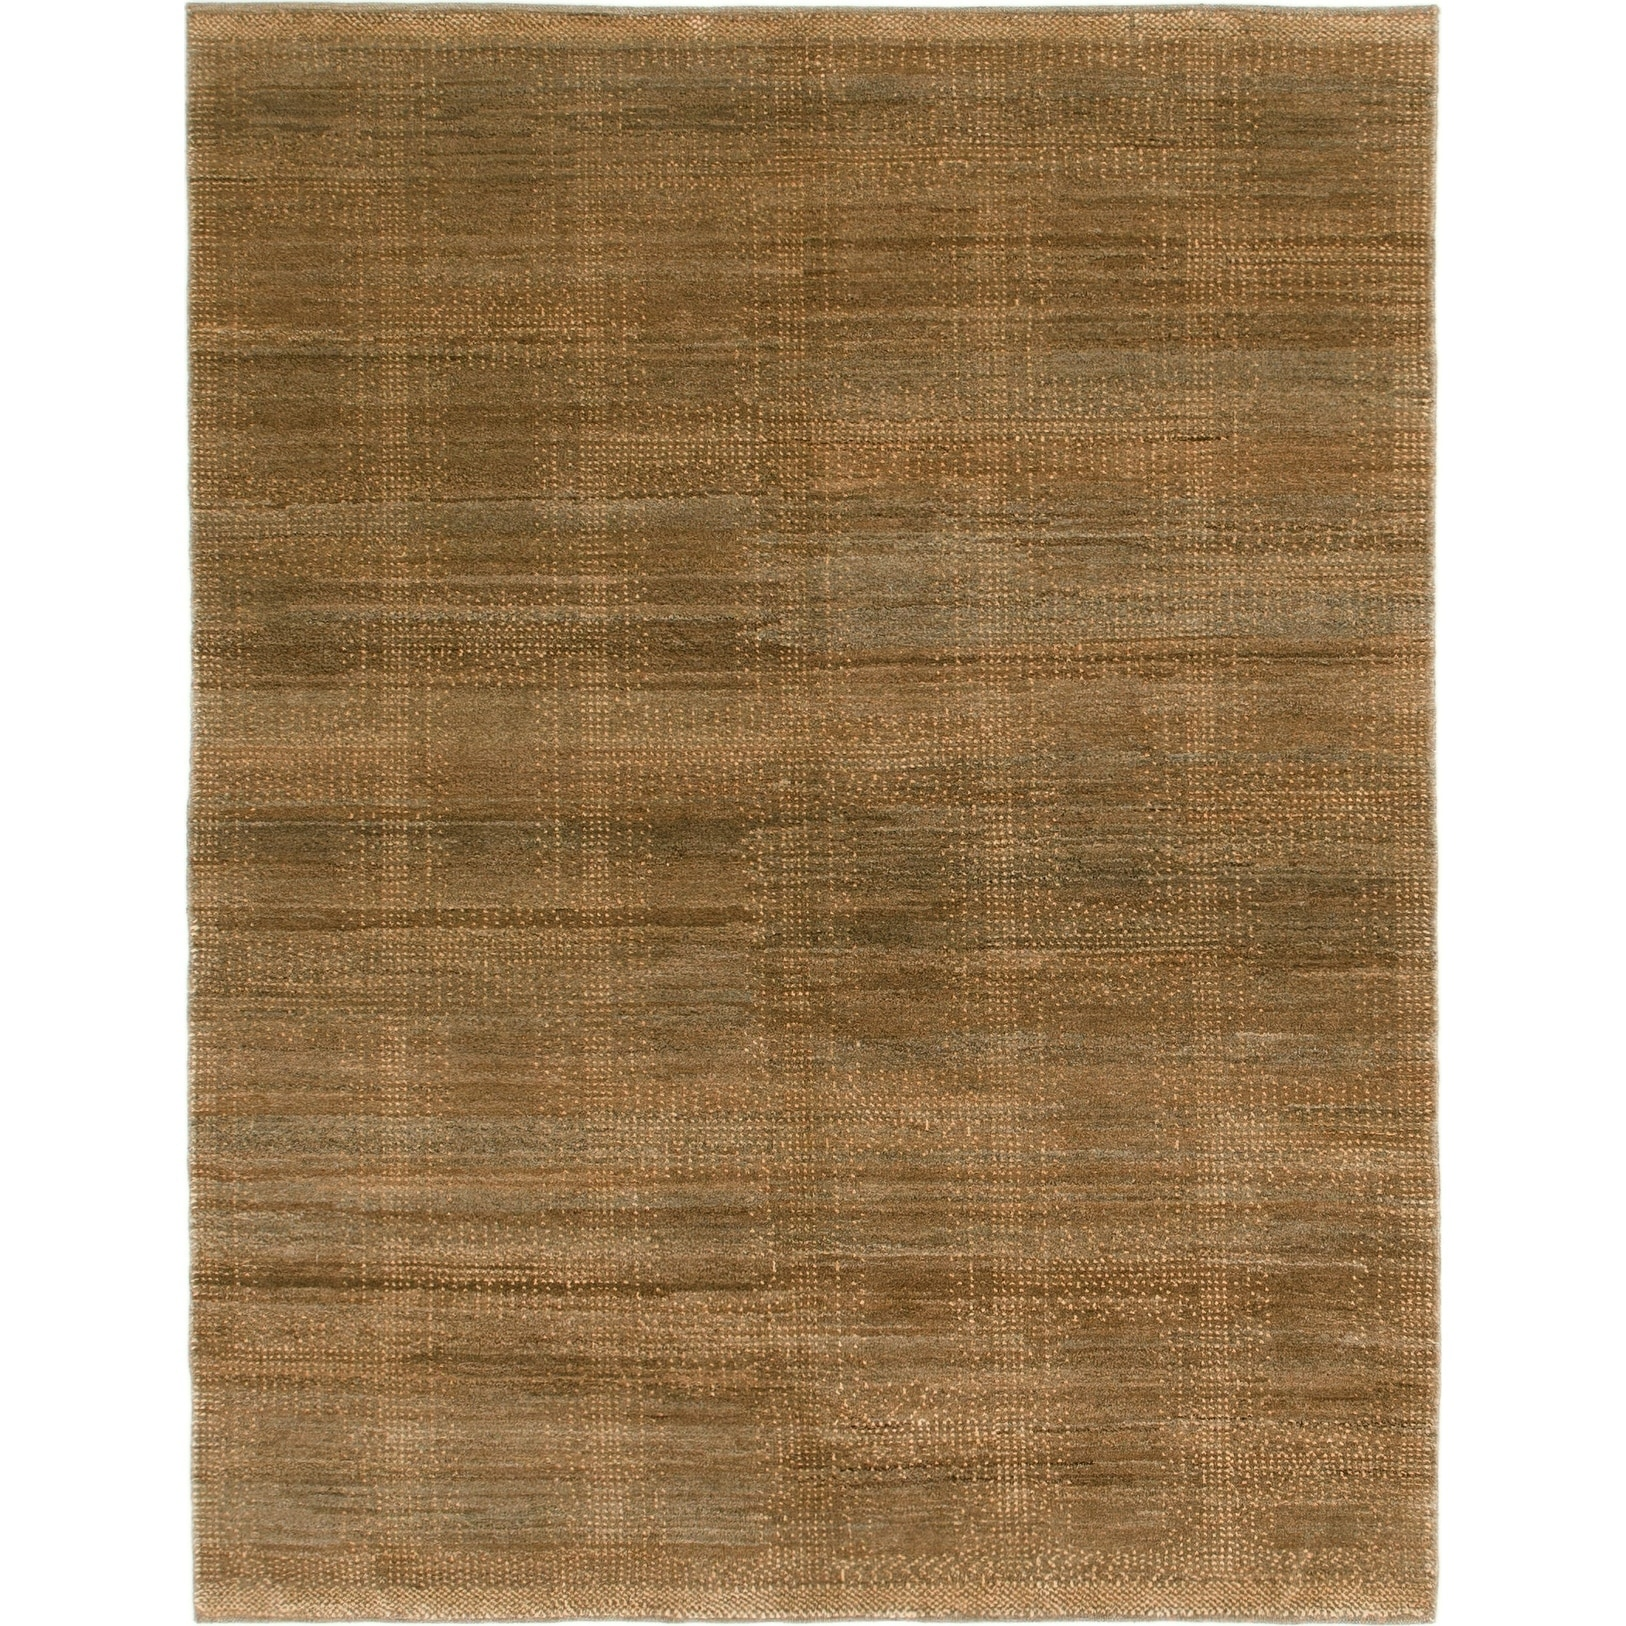 Hand Knotted Kashkuli Gabbeh Wool Area Rug - 5 x 6 4 (Brown - 5 x 6 4)